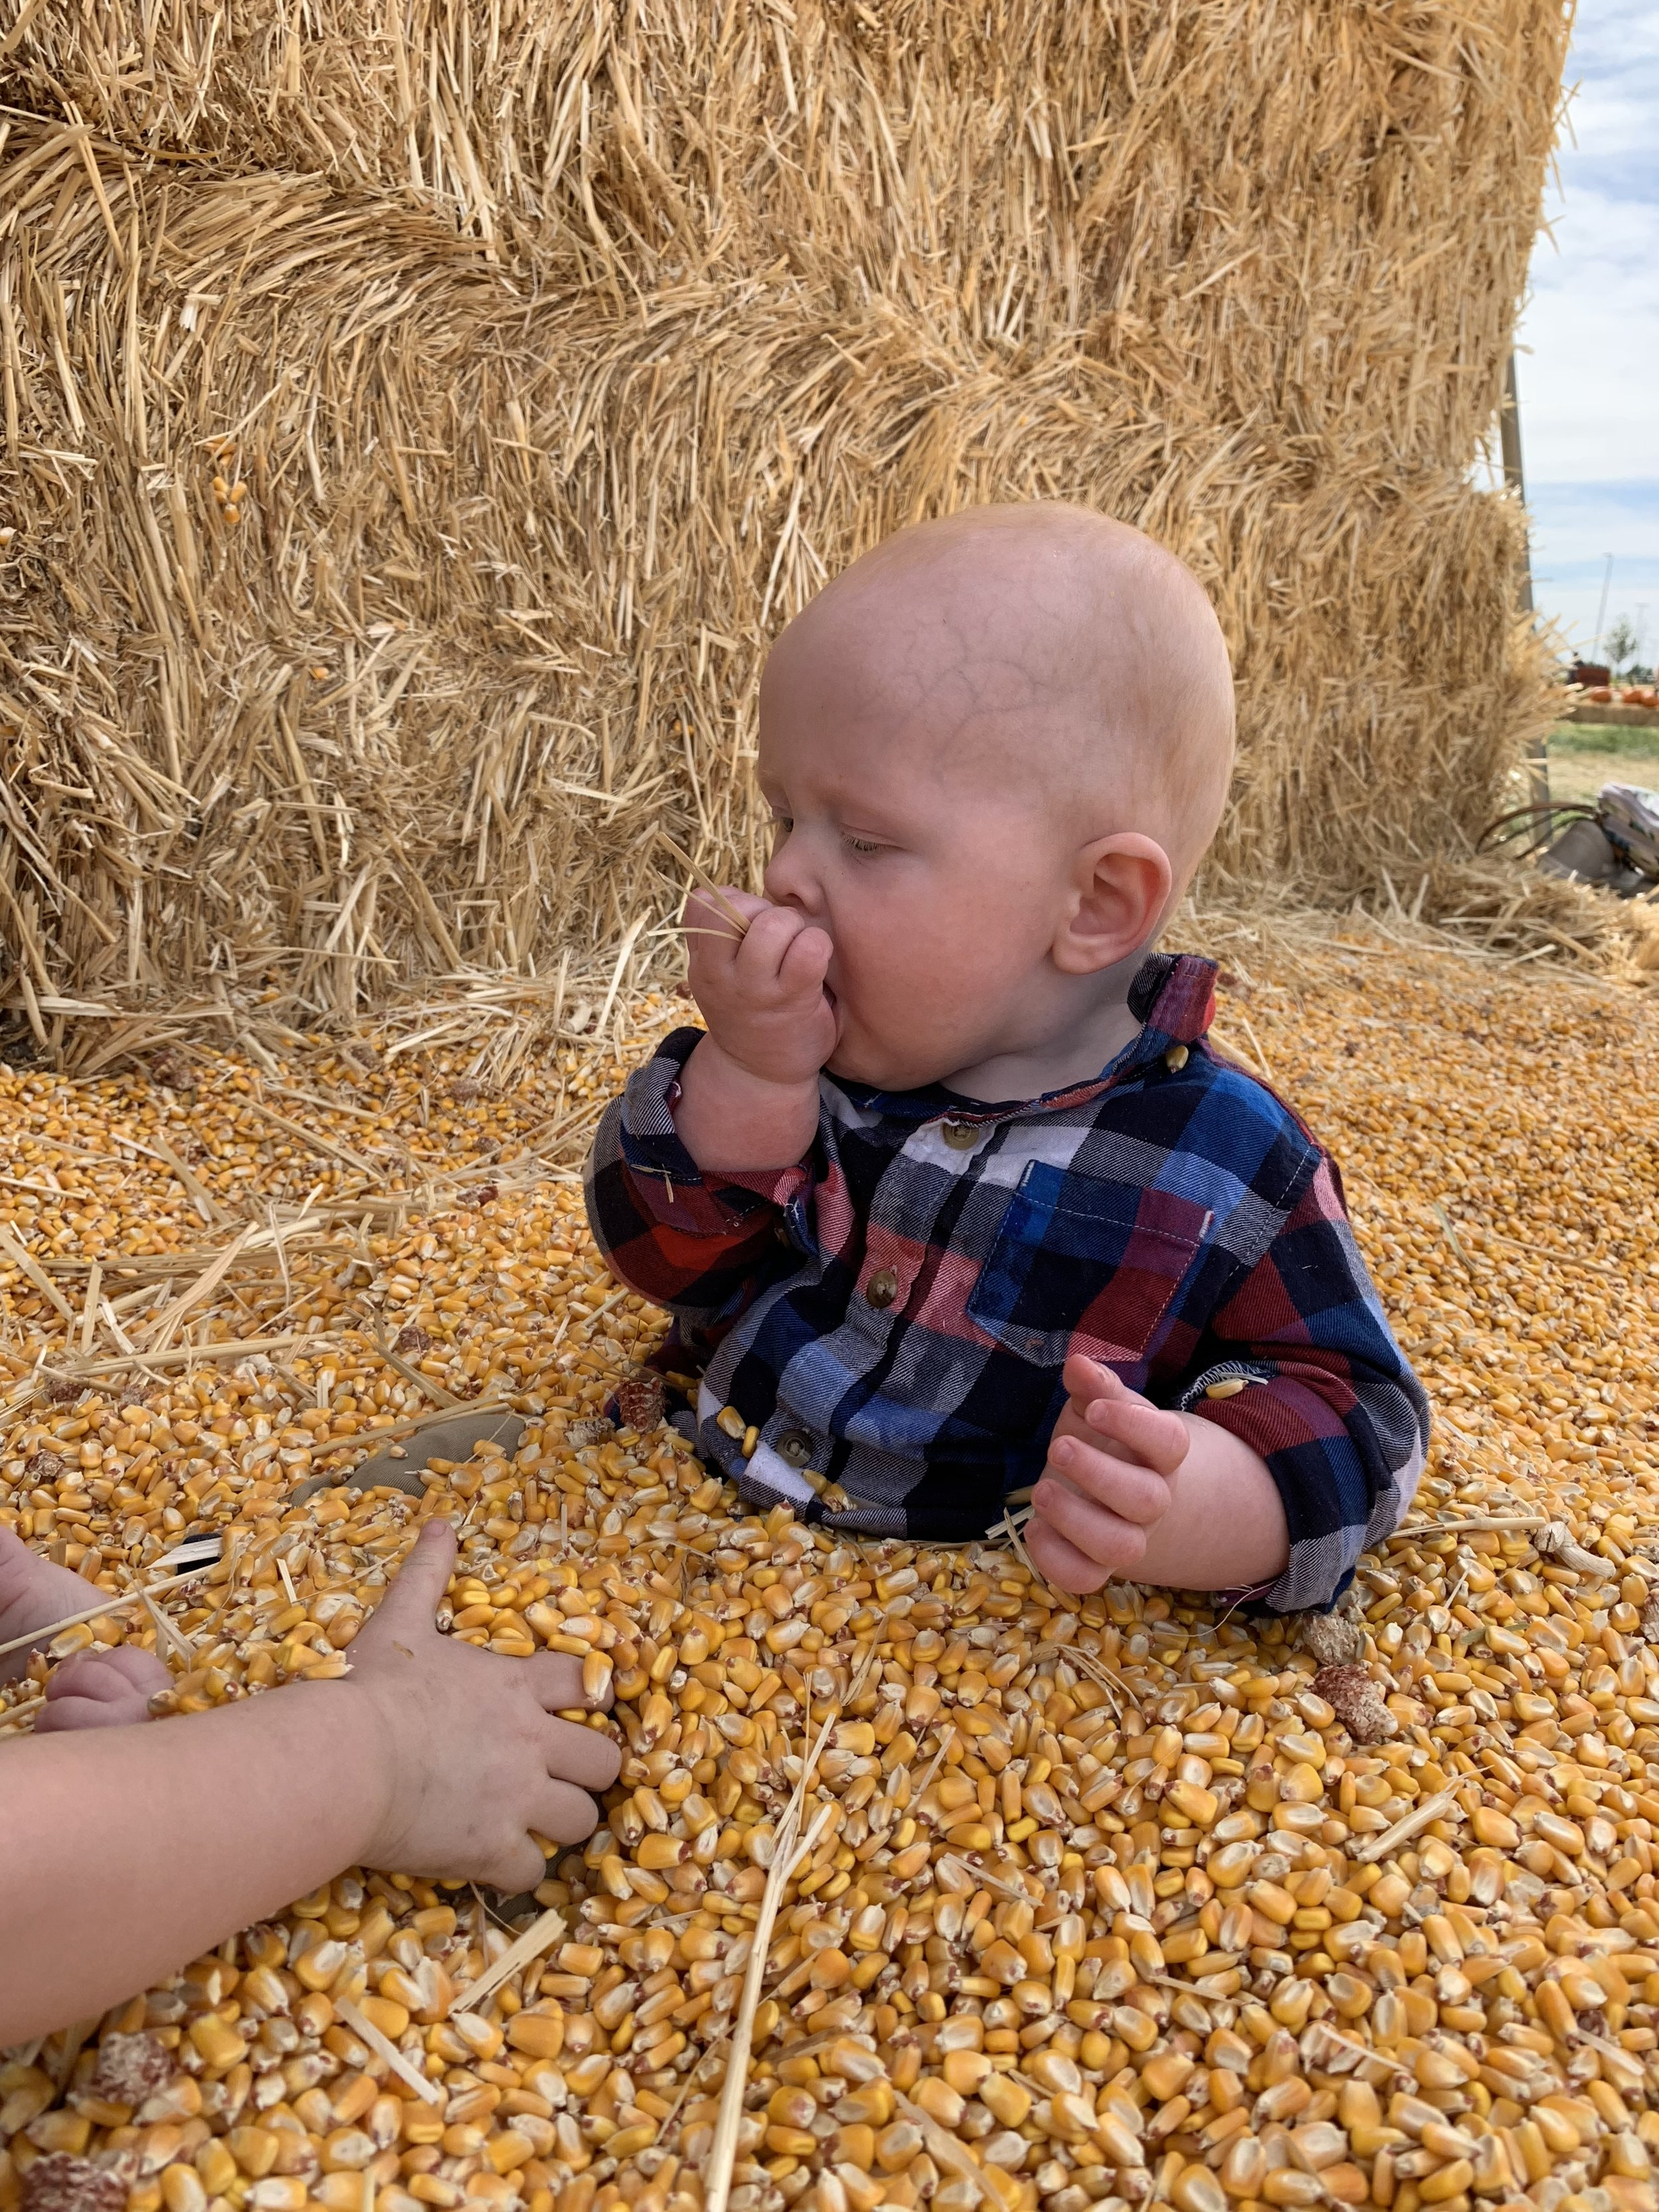 There's just nothing quite like the taste stale corn! (Don't worry, I made sure none got into his mouth!)